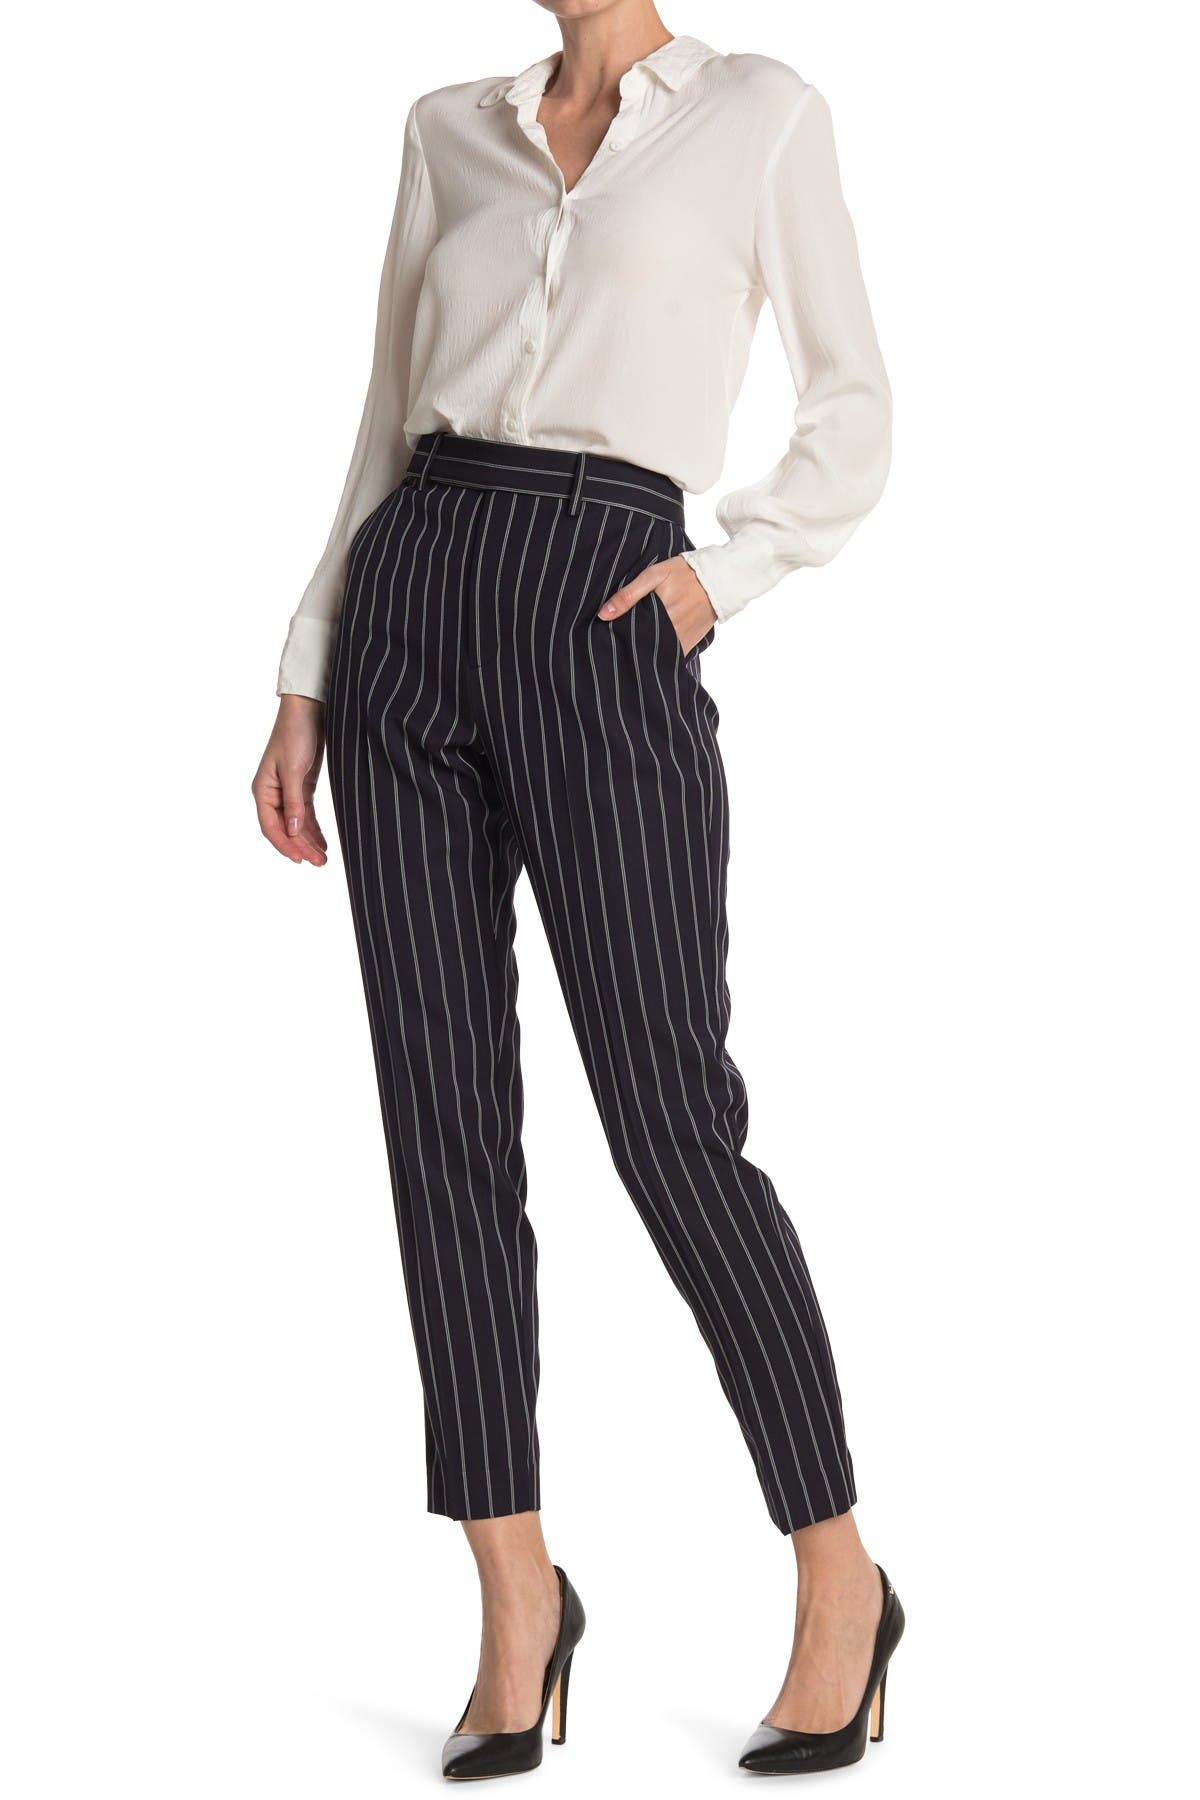 Image of Equipment Warsaw Pinstripe High Waisted Trousers